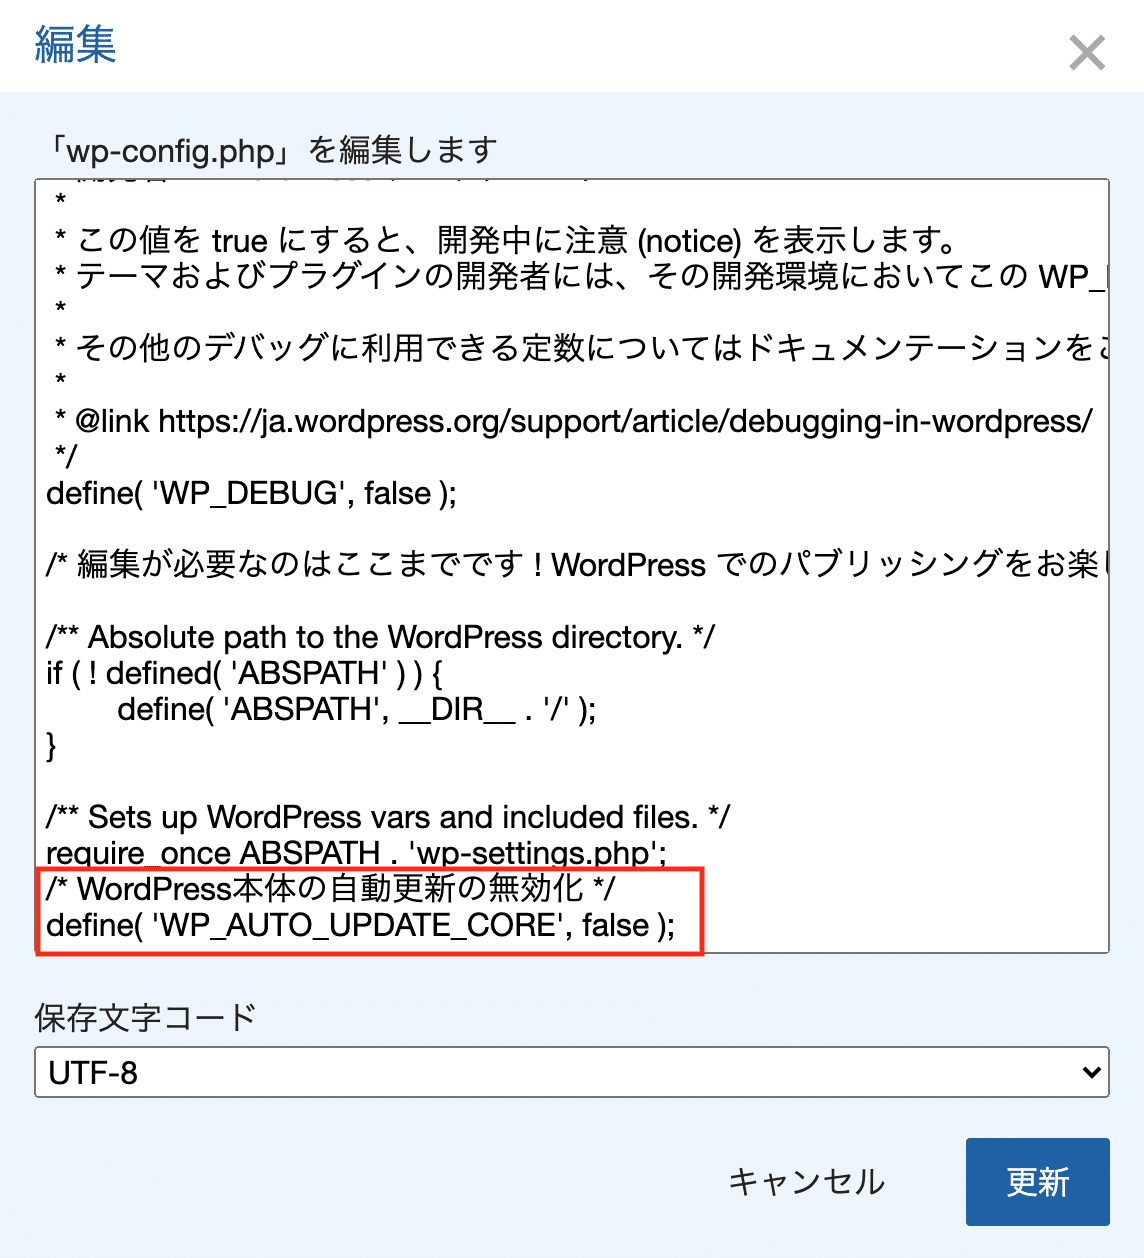 wp config phpにコードを追記